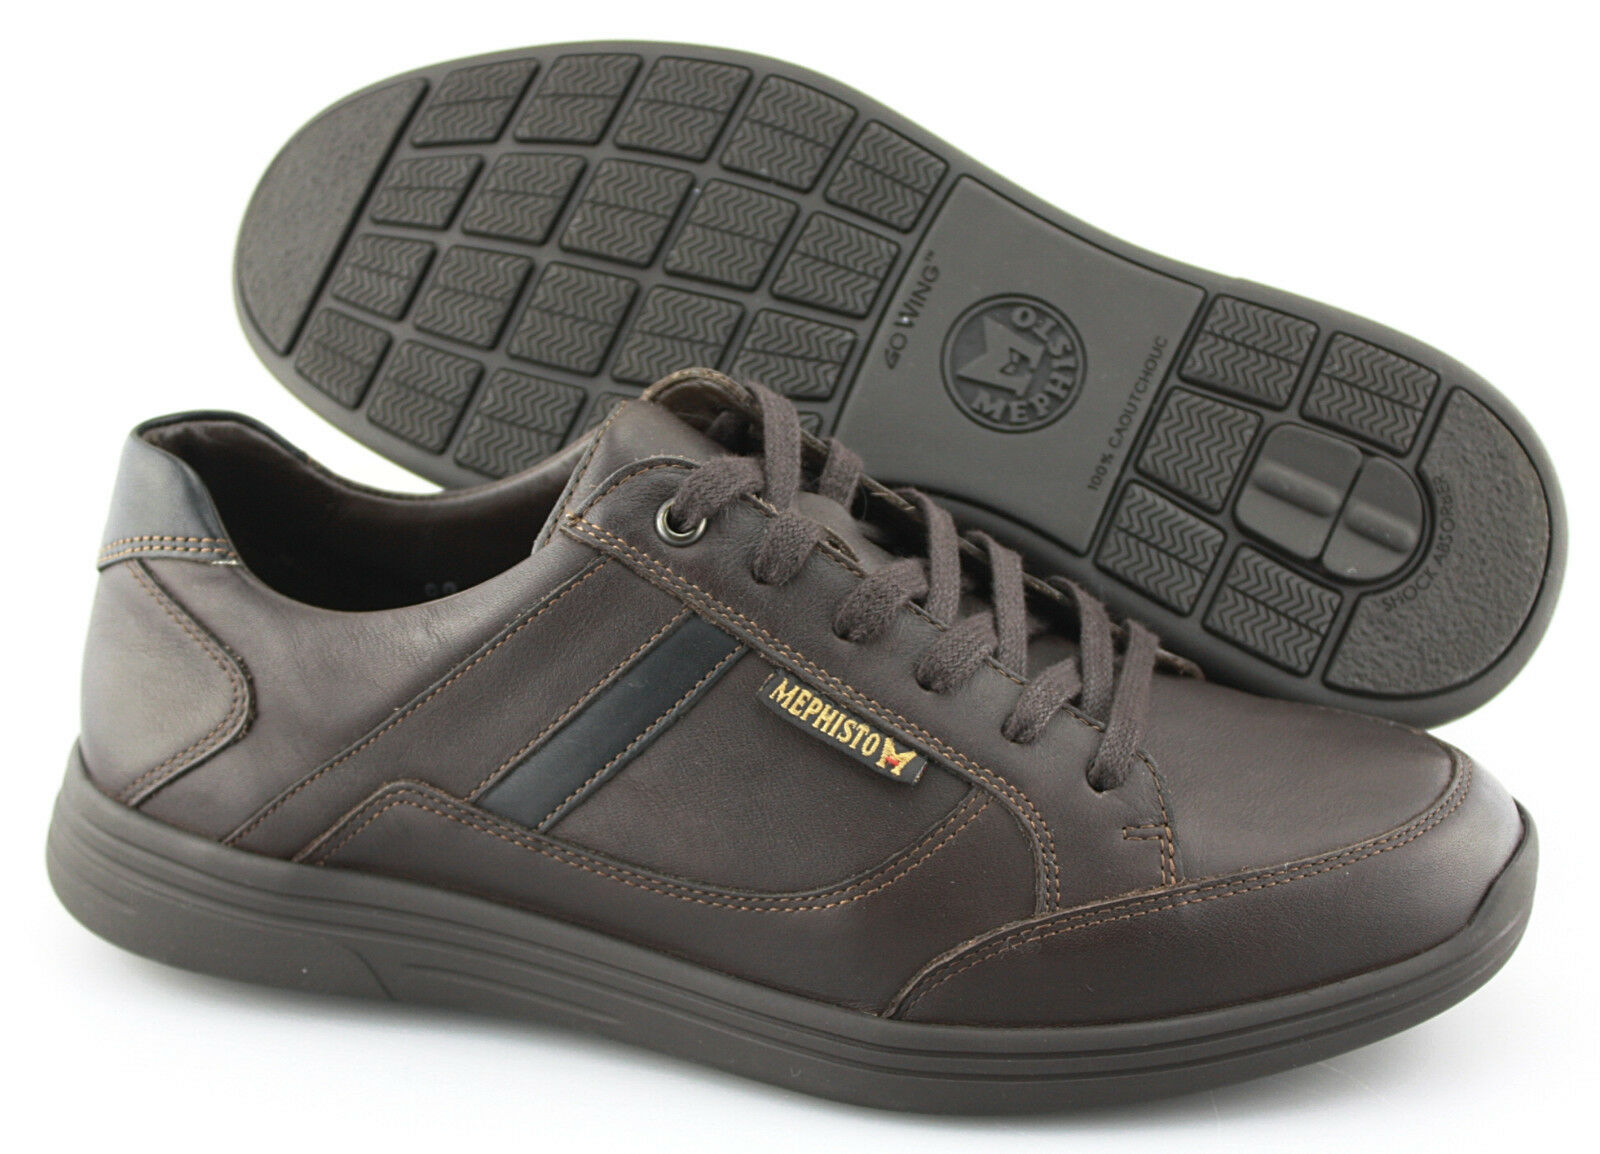 Men's MEPHISTO 'Frank GoWing' Dark Brown Leather Sneakers Size US 8.5 EUR 8